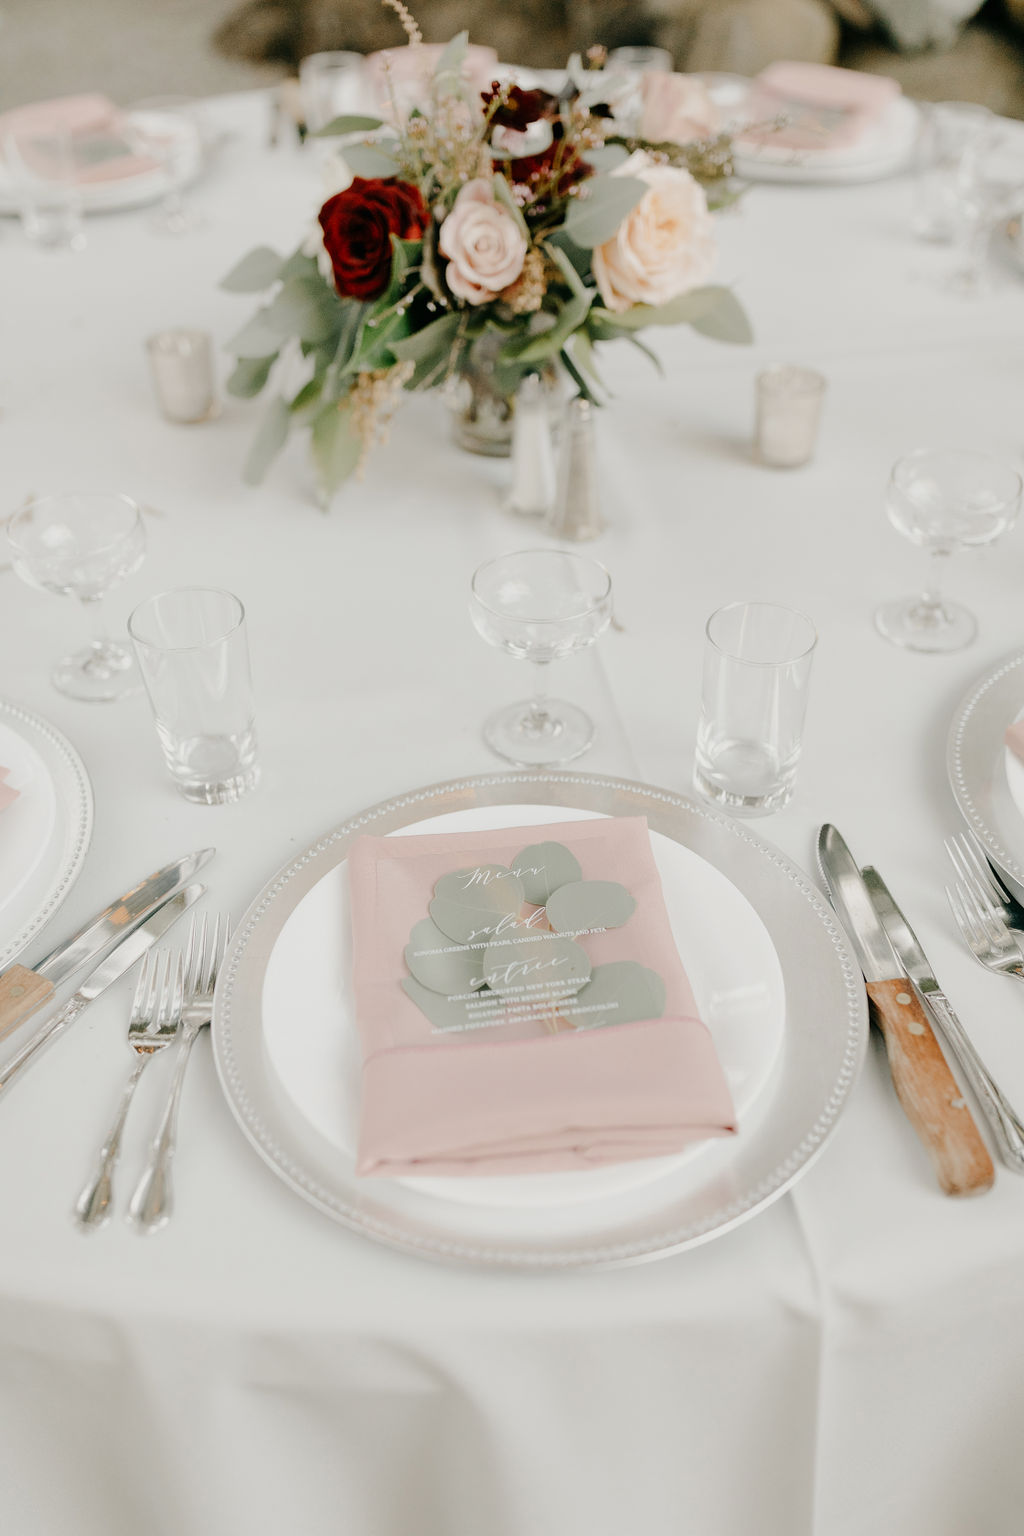 Deer Park Villa Wedding Planner Perfectly Planned Moments Nirav Patel Photography Reception Tables.JPG